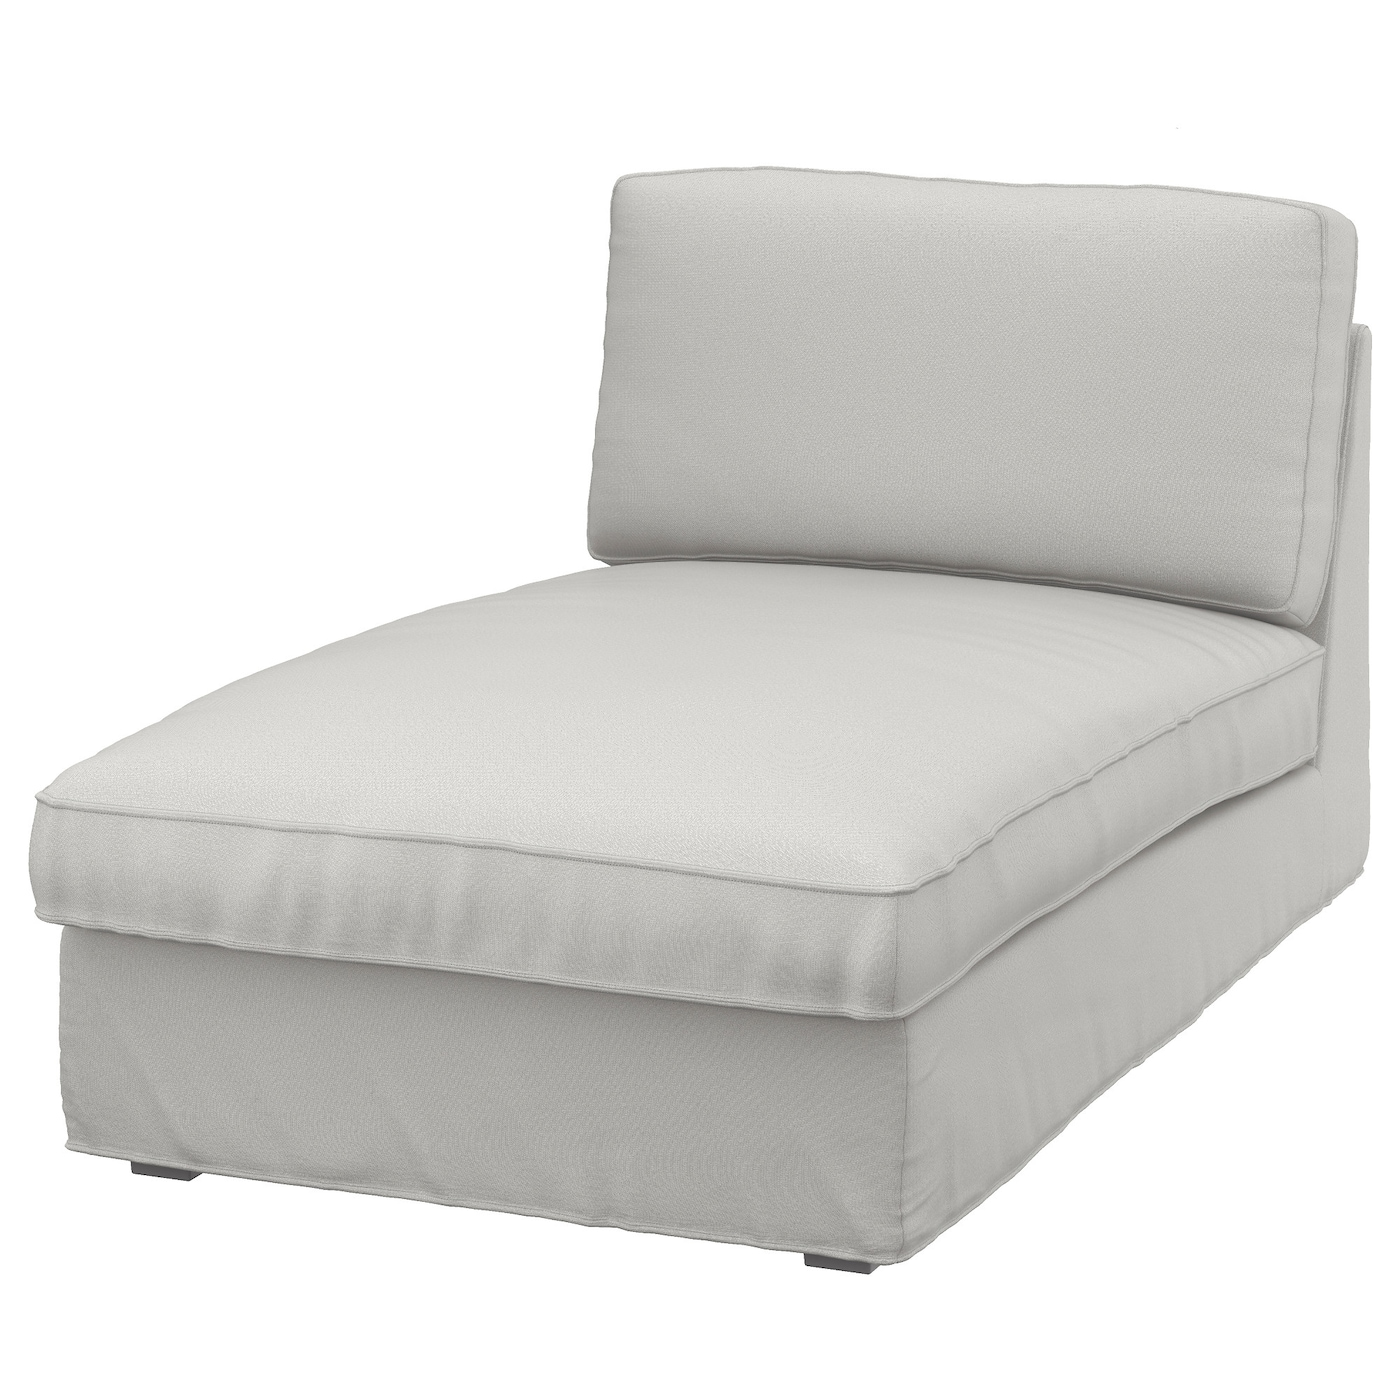 with and beautiful of chaise sofa longue ikea backabro guest bed vilasund room office review